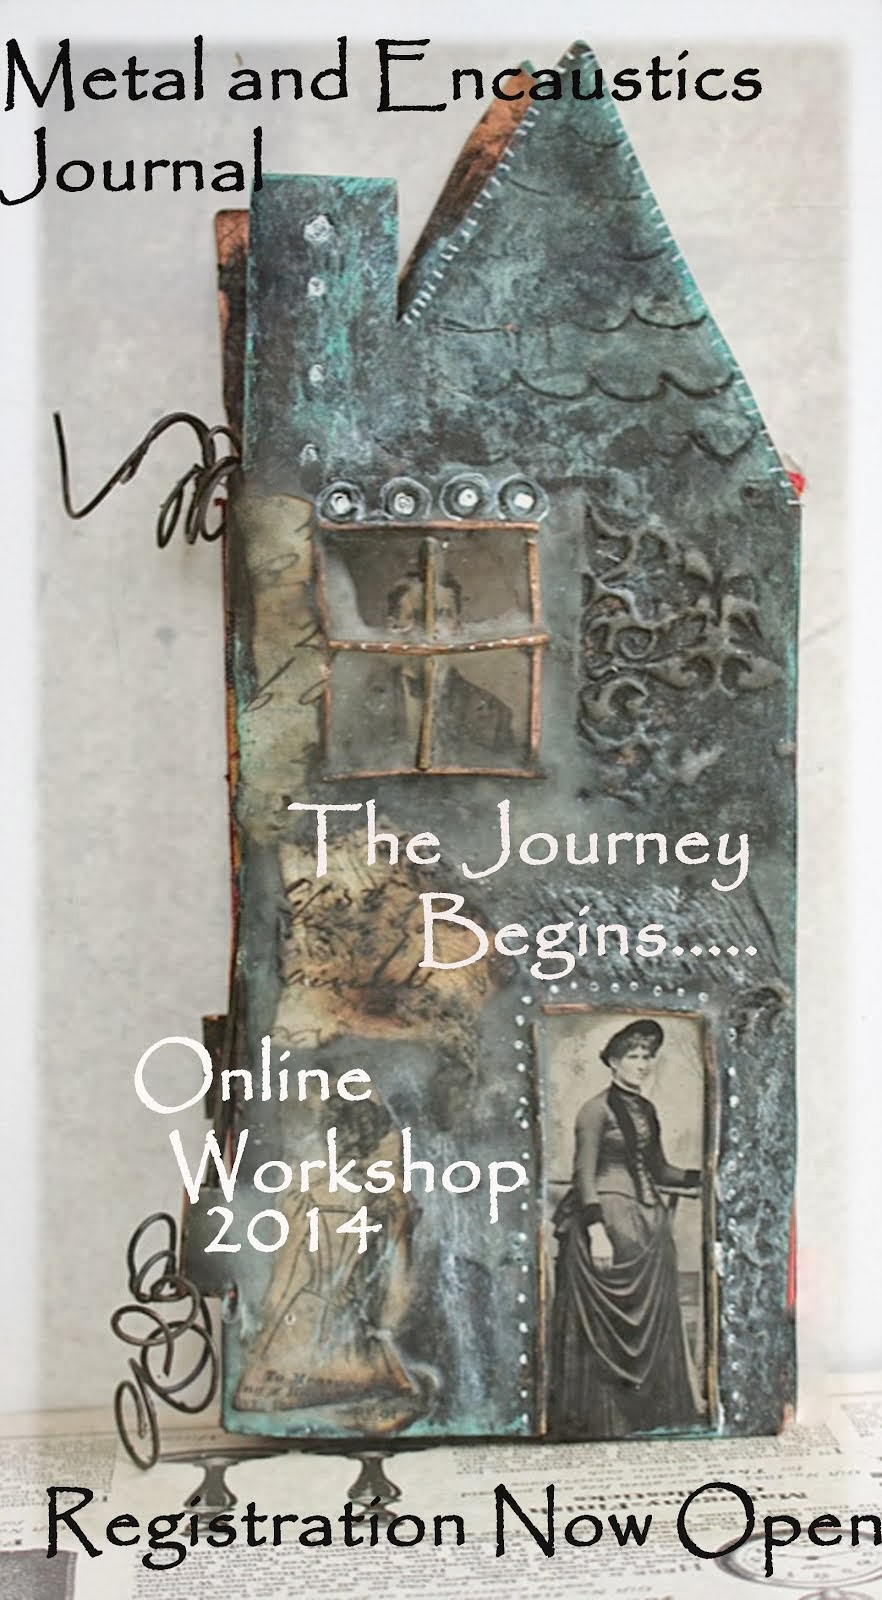 Encaustics and Metal Journal The Journey Begins... Online Workshop